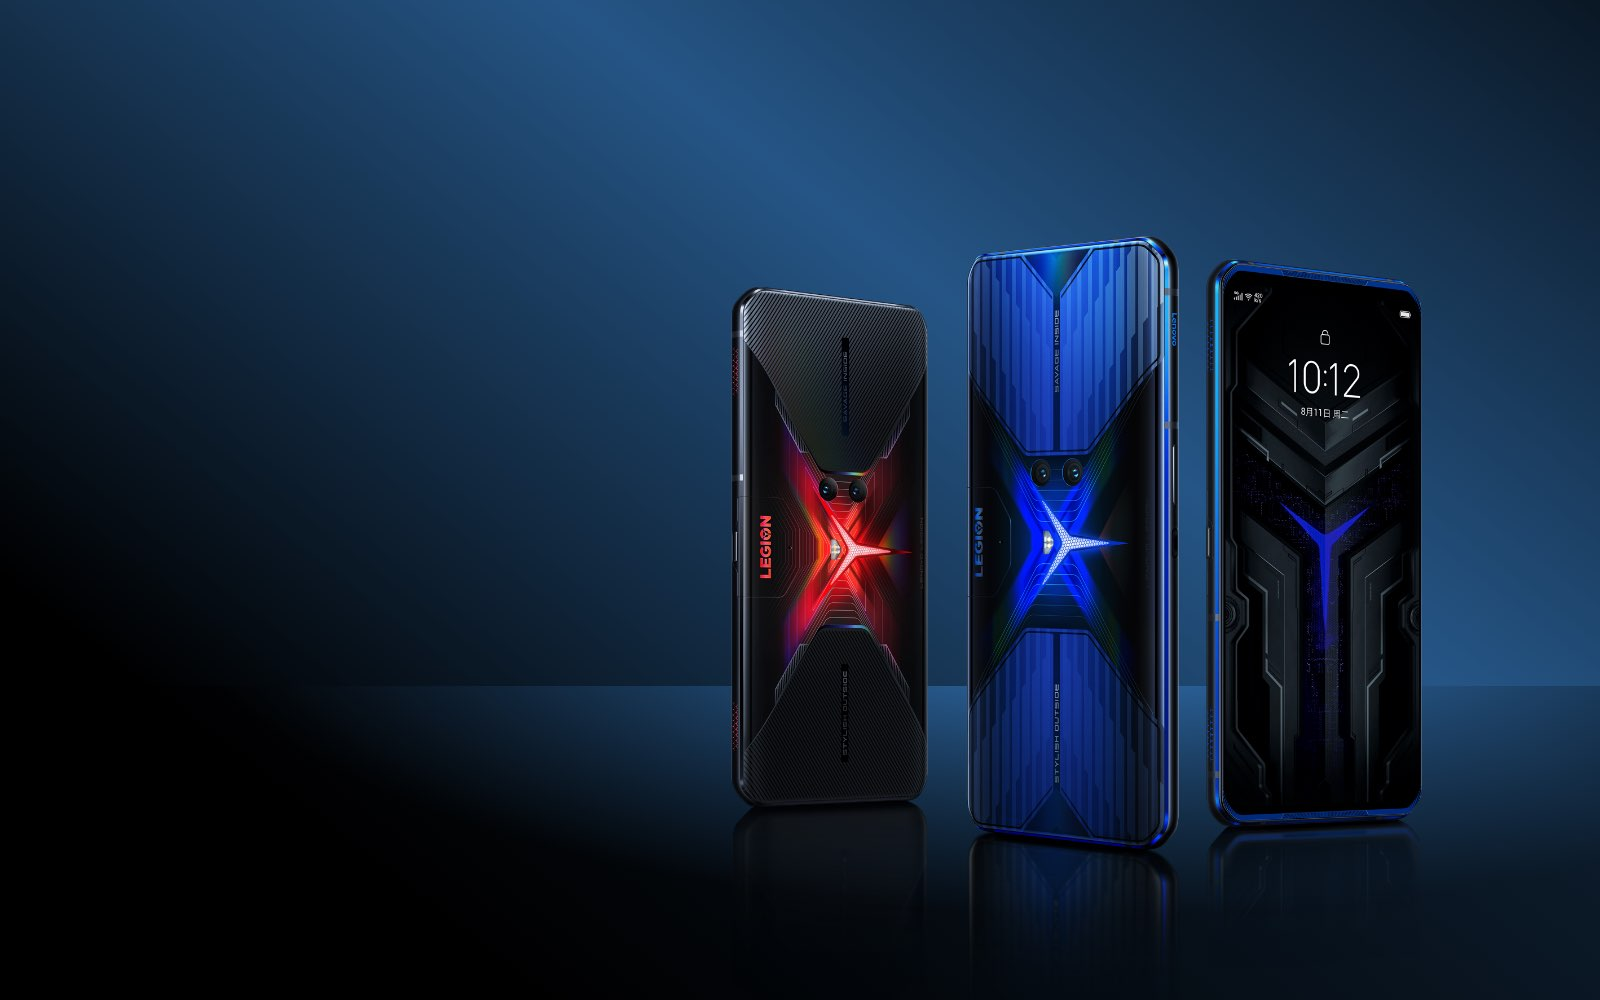 Three Lenovo Legion Phone Duel standing in portrait orientation with blue and red back covers against dark blue background